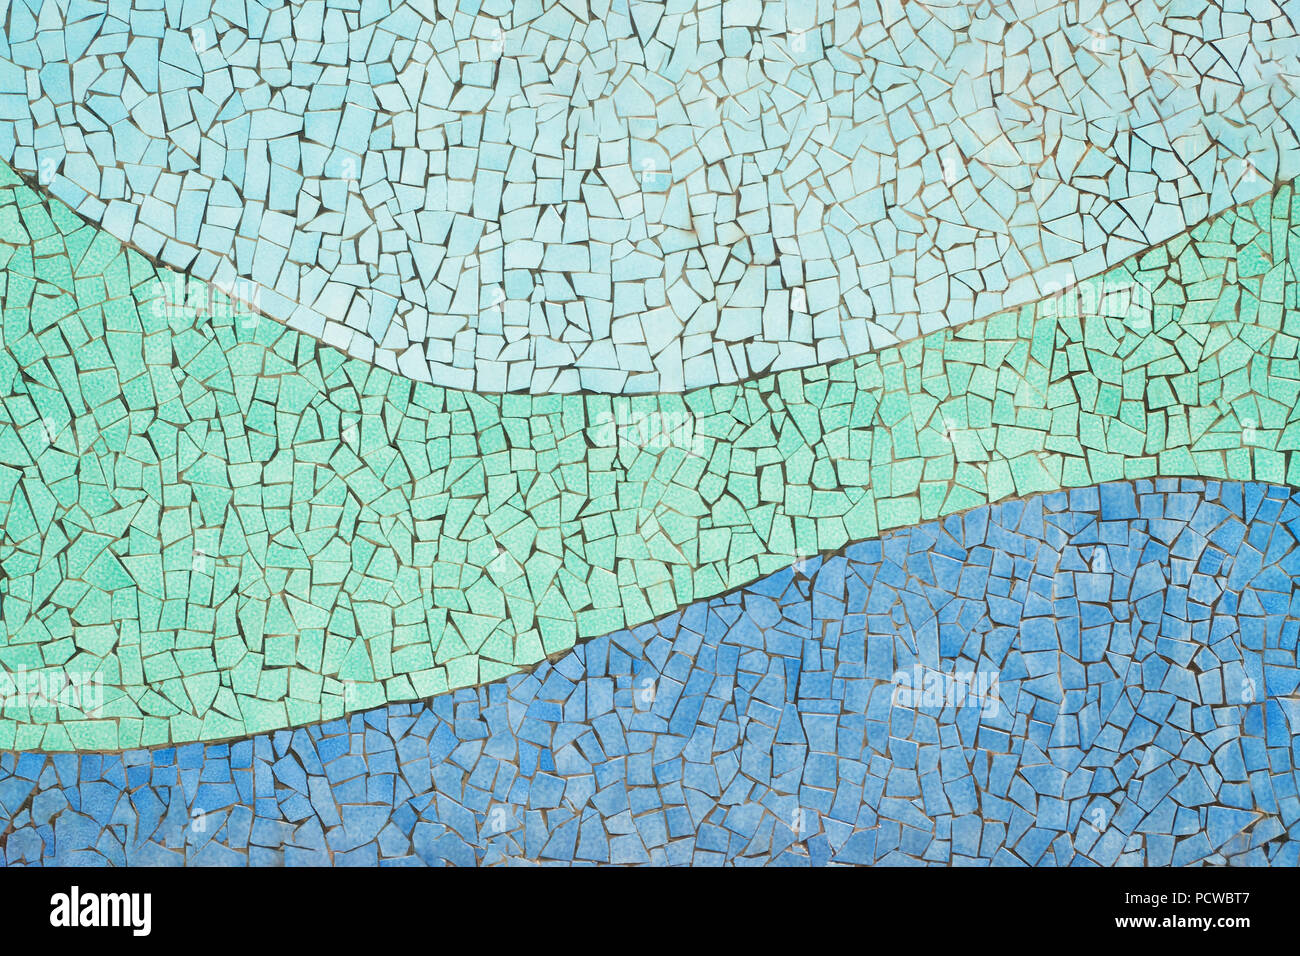 tiled ceramic mosaic wall with blue wavy lines in public park in city of ceramics, Vietri Sul Mare, Salerno, Campania, Italy Stock Photo